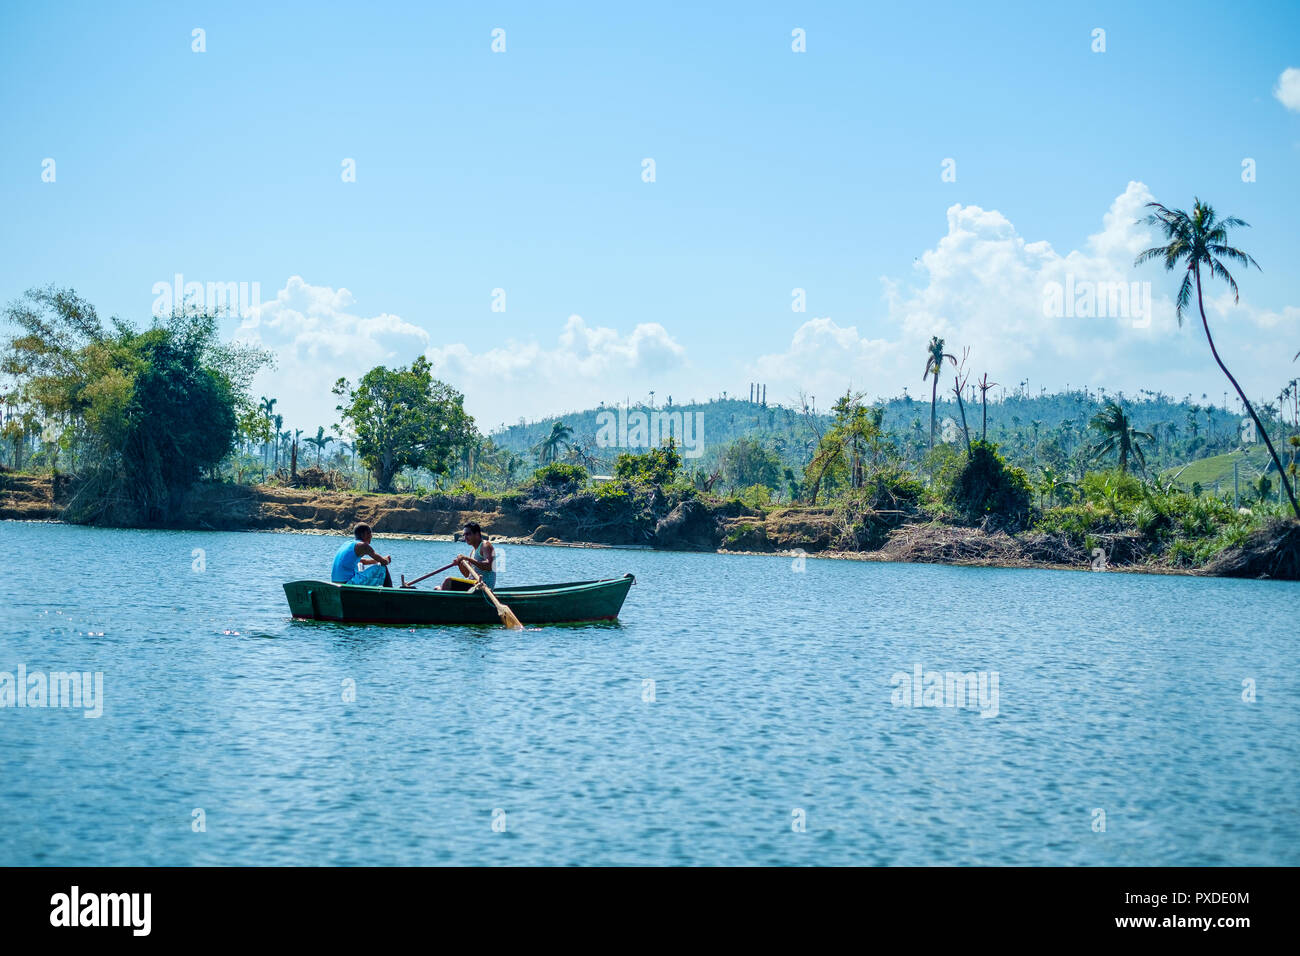 Two Cuban Men in a Rowing boat on the River Toa - Stock Image